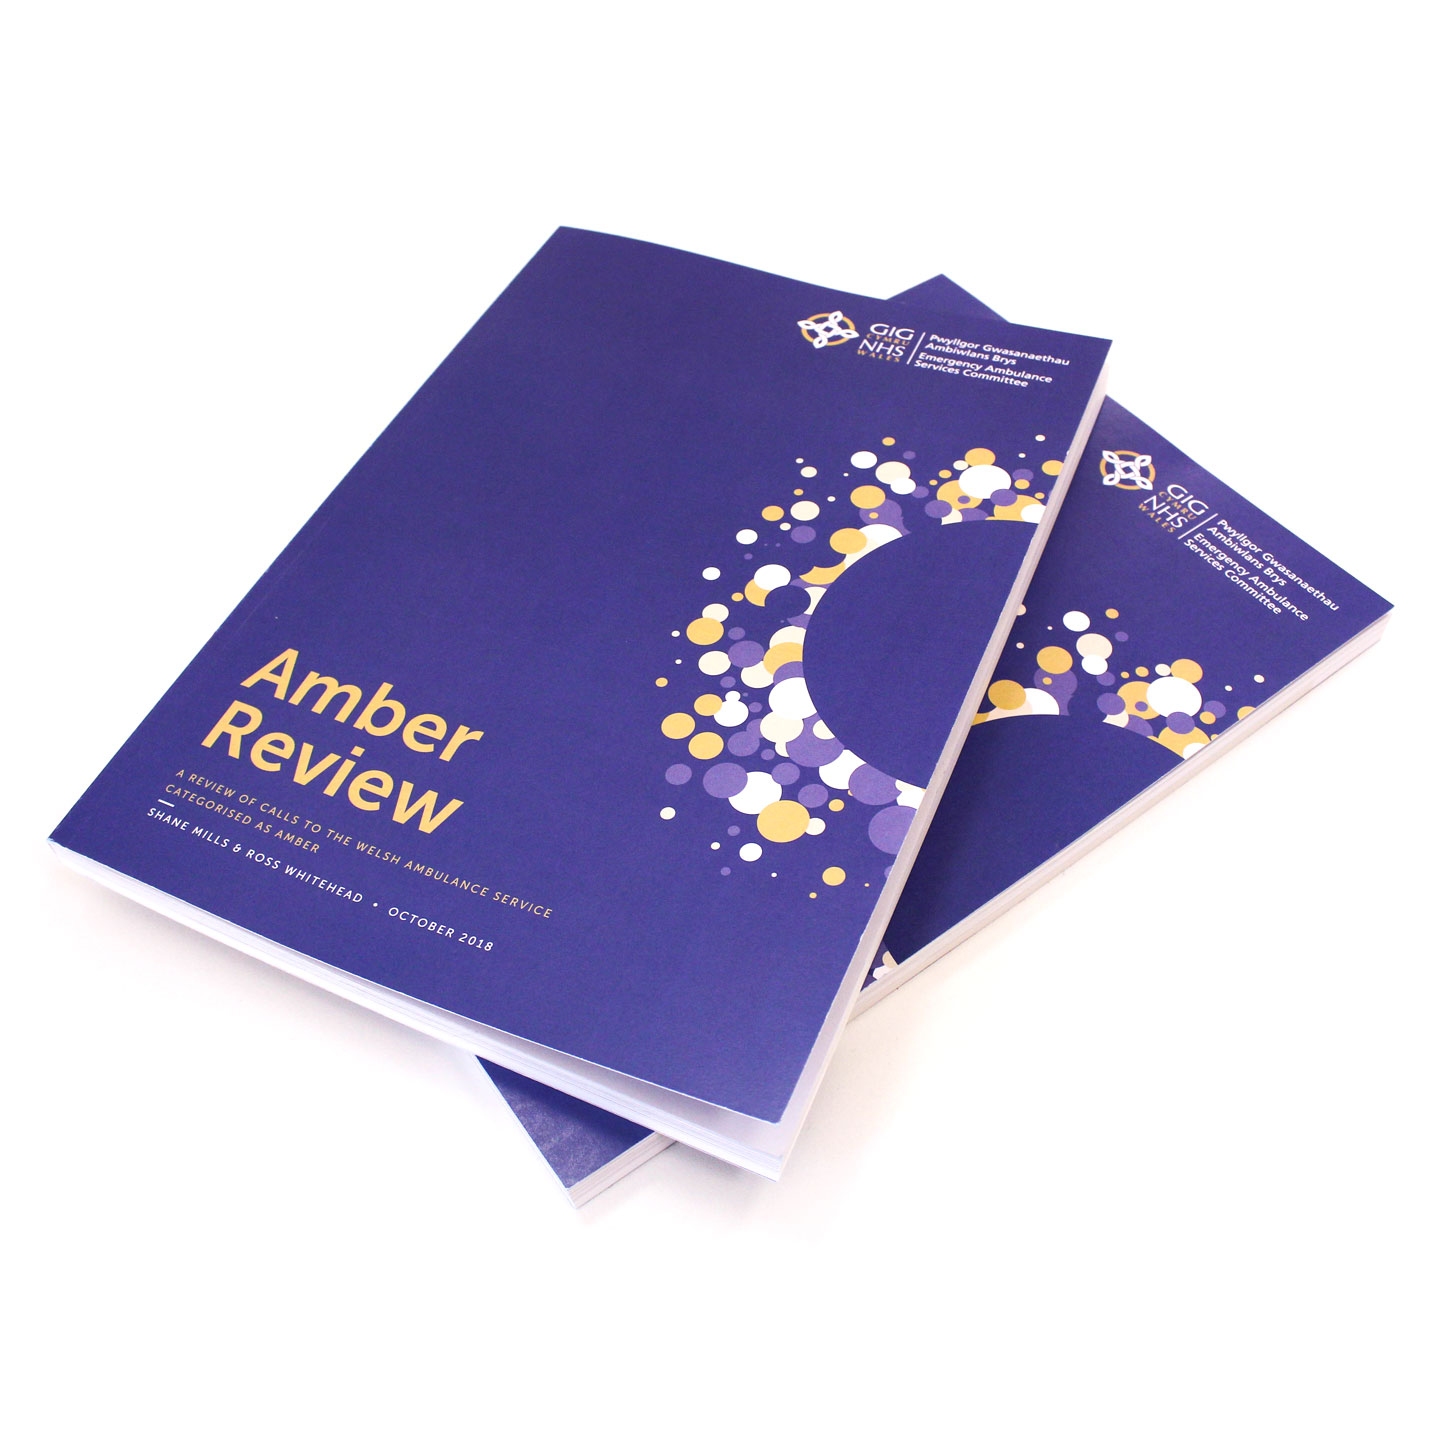 Amber Review Covers